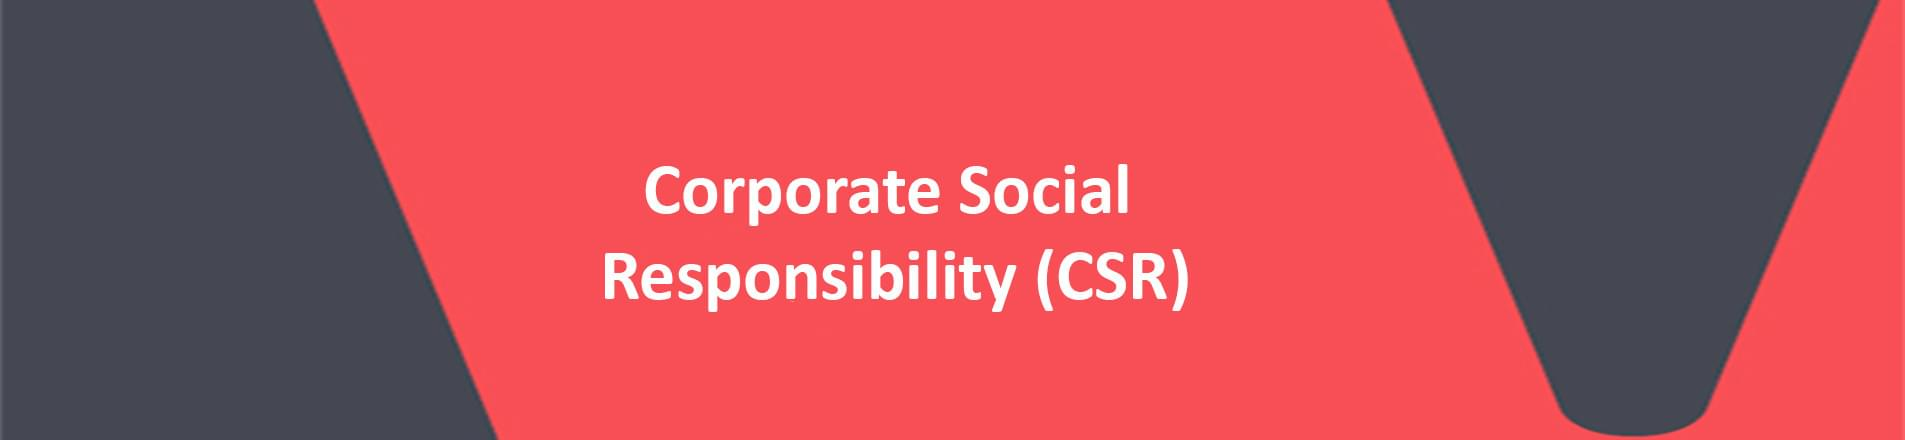 red banner with white text reading corporate social responsibility